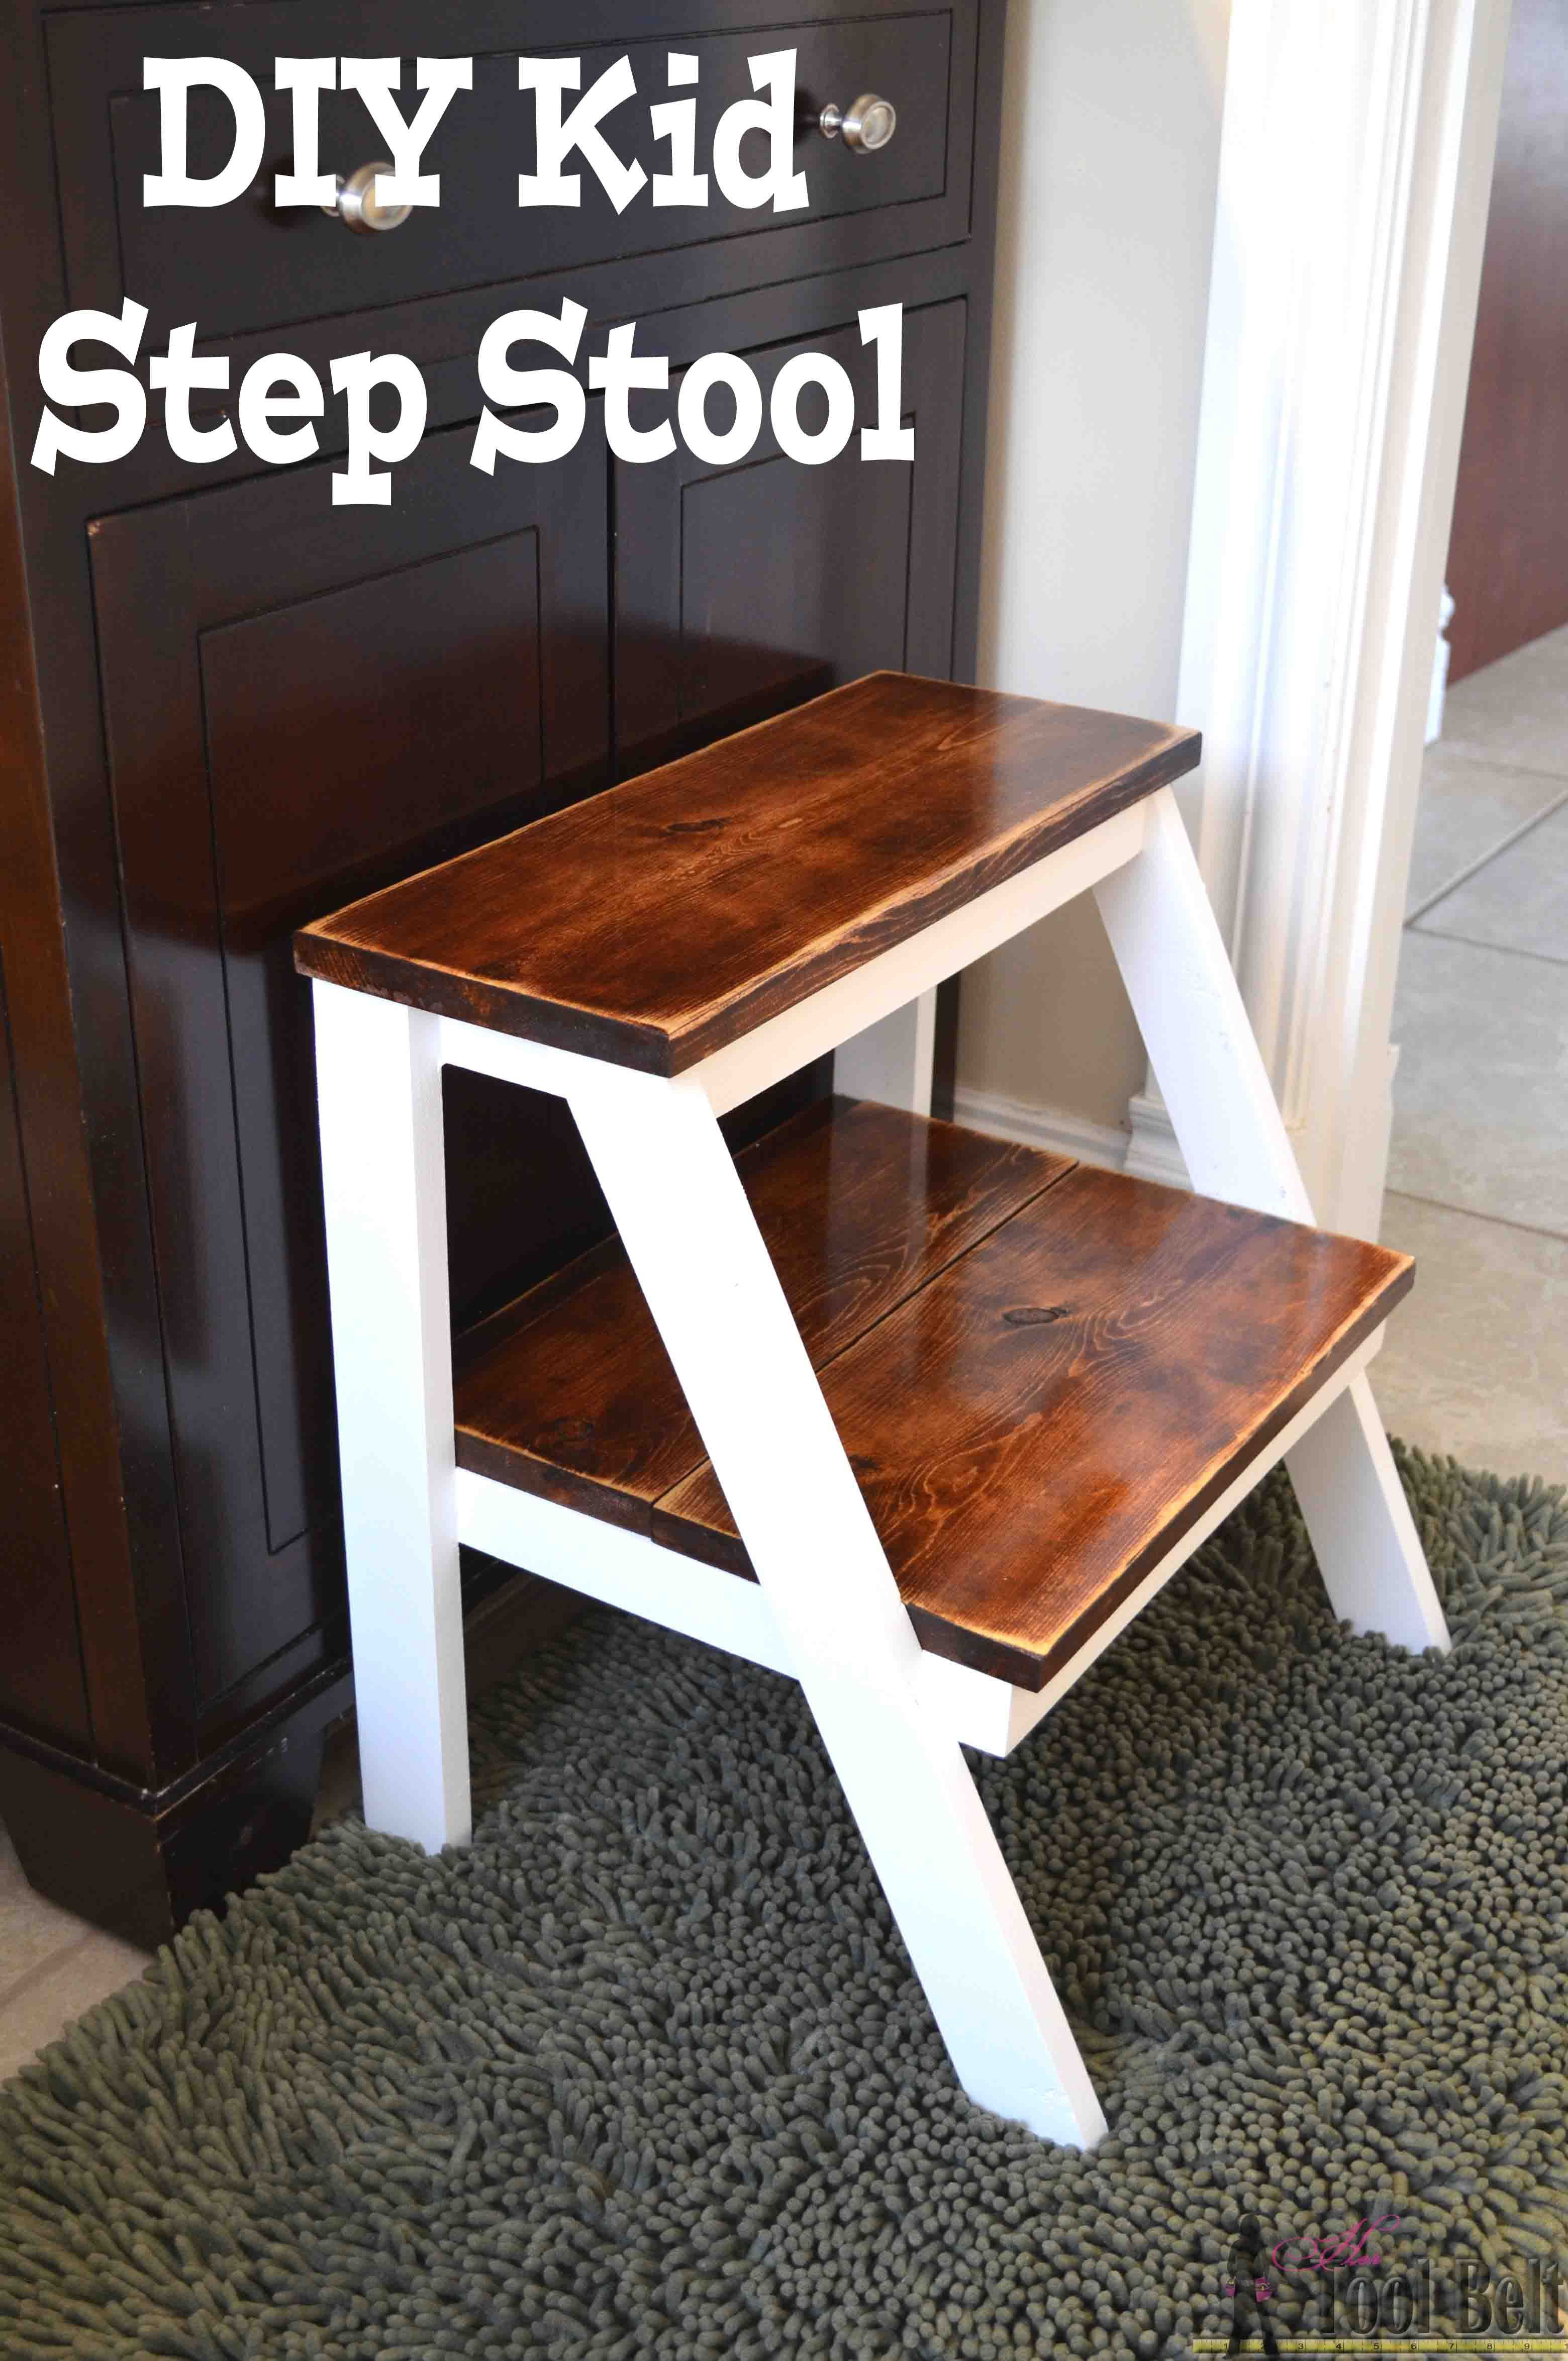 Kid's Step Stool | Wood shop projects, Simple furniture ...